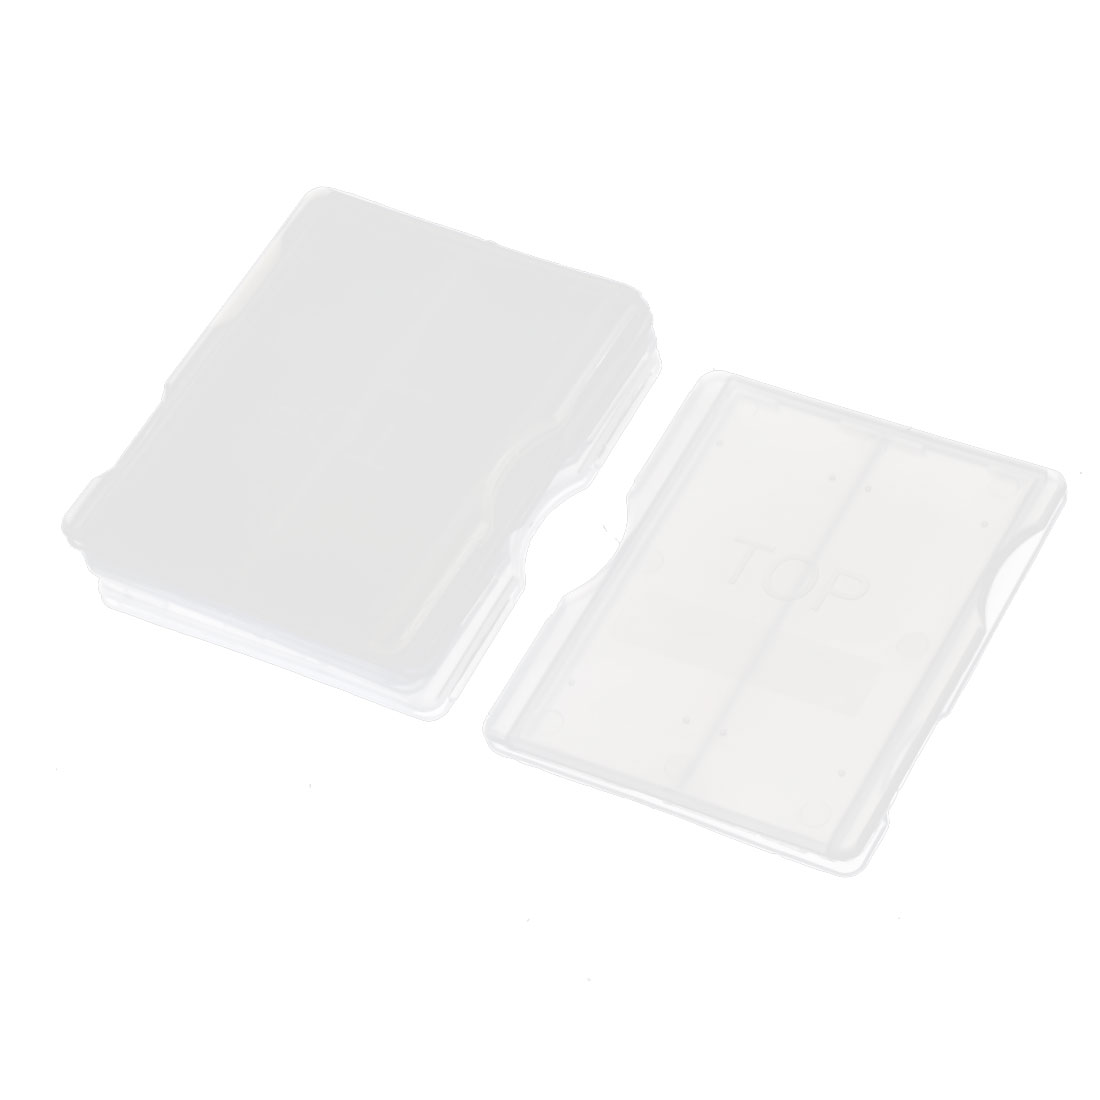 5 Pcs 2 Compartment Microscope Glass Slide Box Case Clear